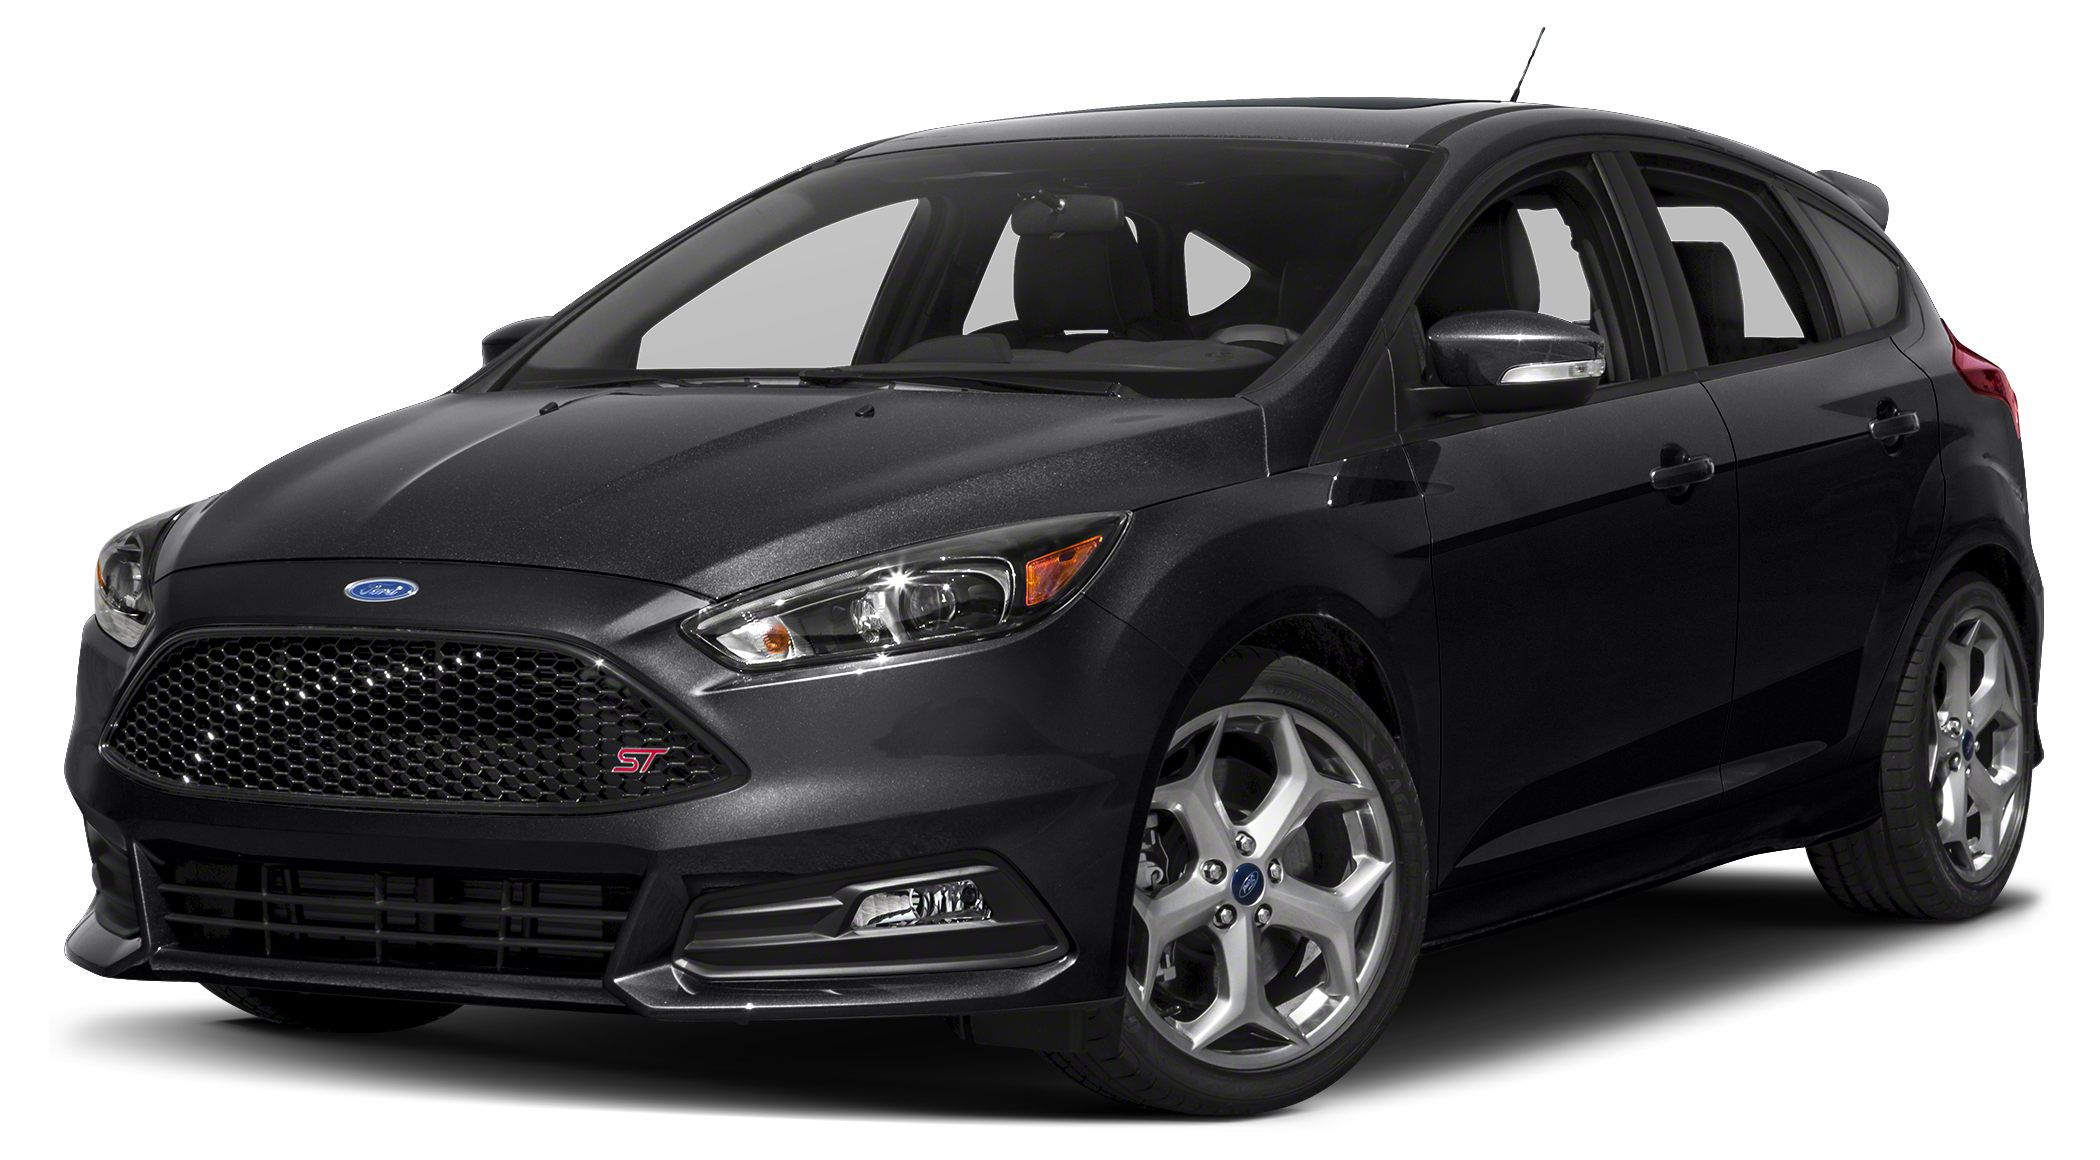 2016 Ford Focus ST Base  KEY FACTORY FEATURES 2016 ST HATCHBACK WITH POWER SUNROOF MOONROOF 18